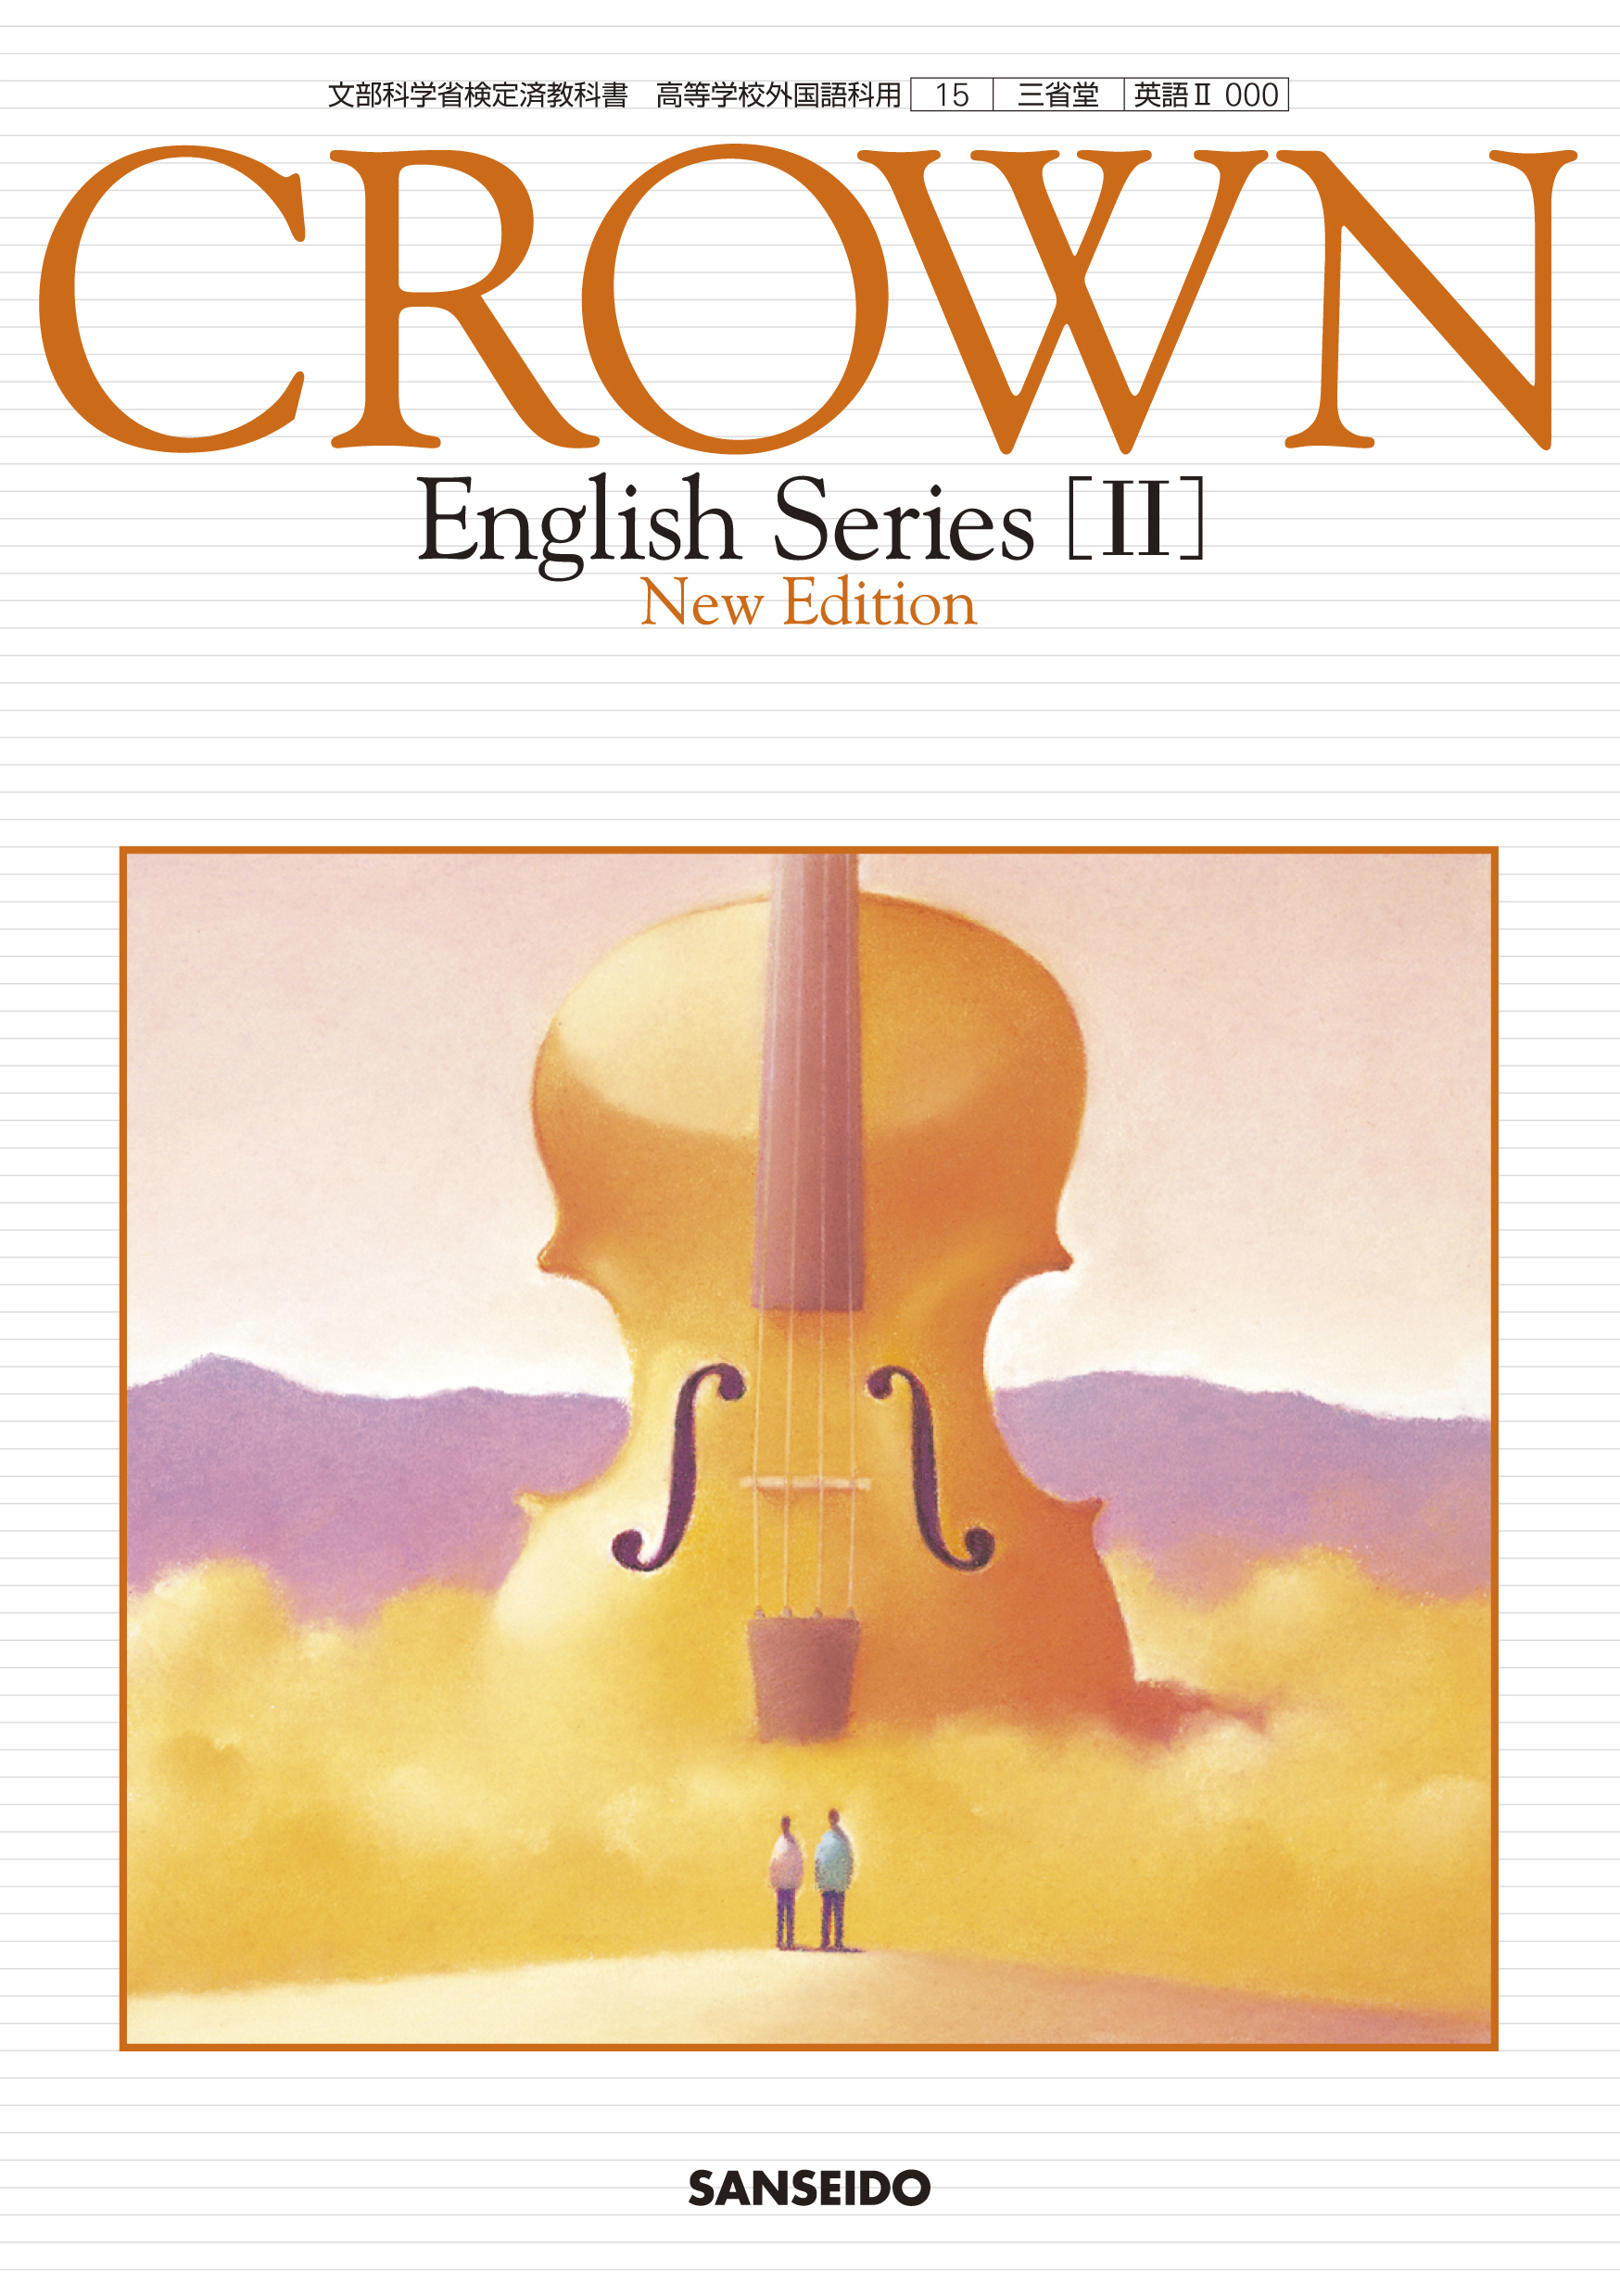 15_CROWN (II) New Edition